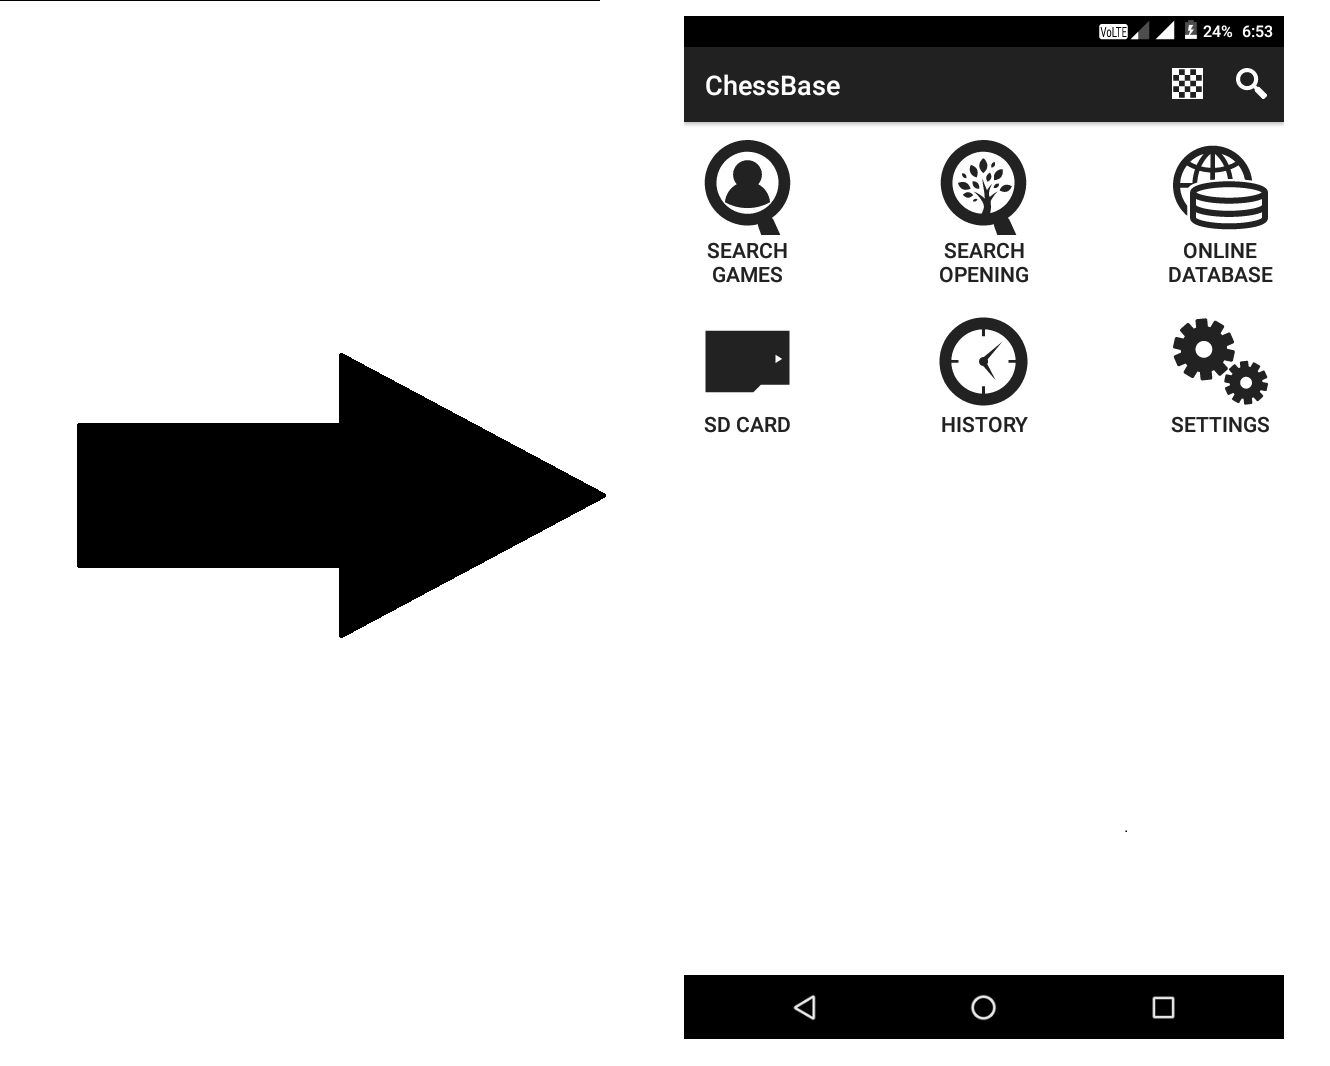 How to Download ChessBase app for Free - mohit sonu